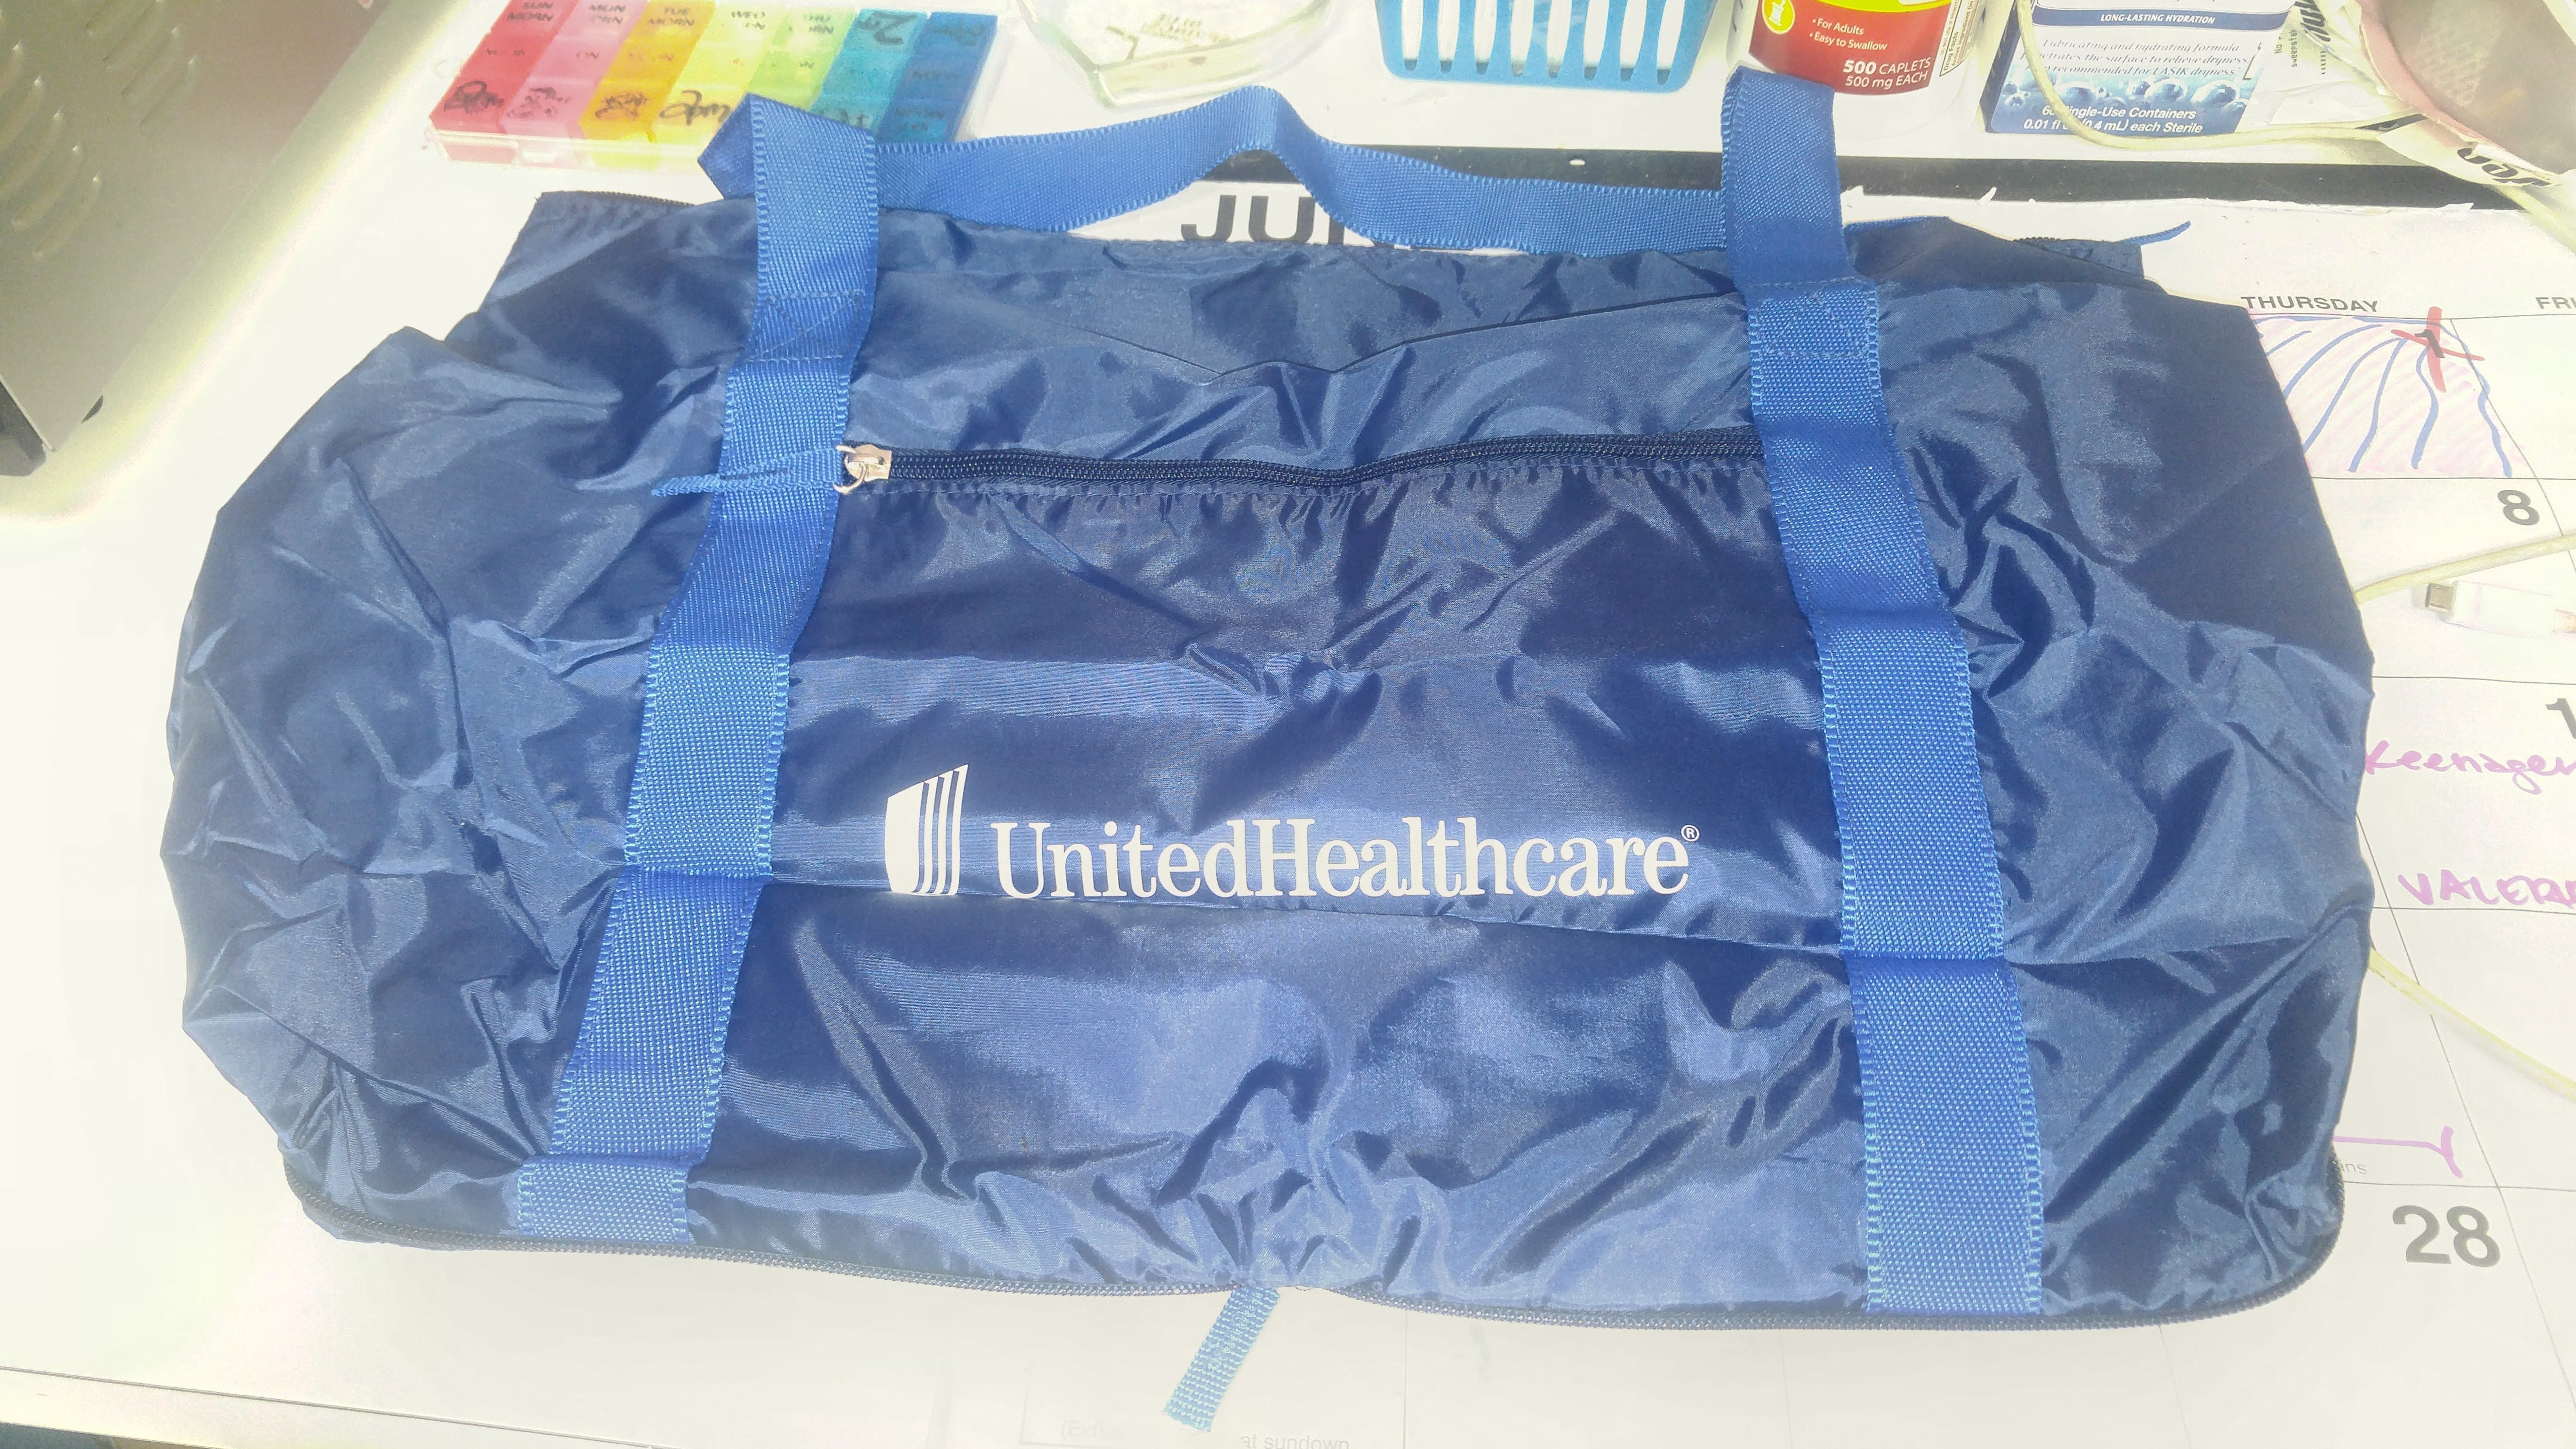 Don't look a gift horse in the mouth: United Healthcare ...